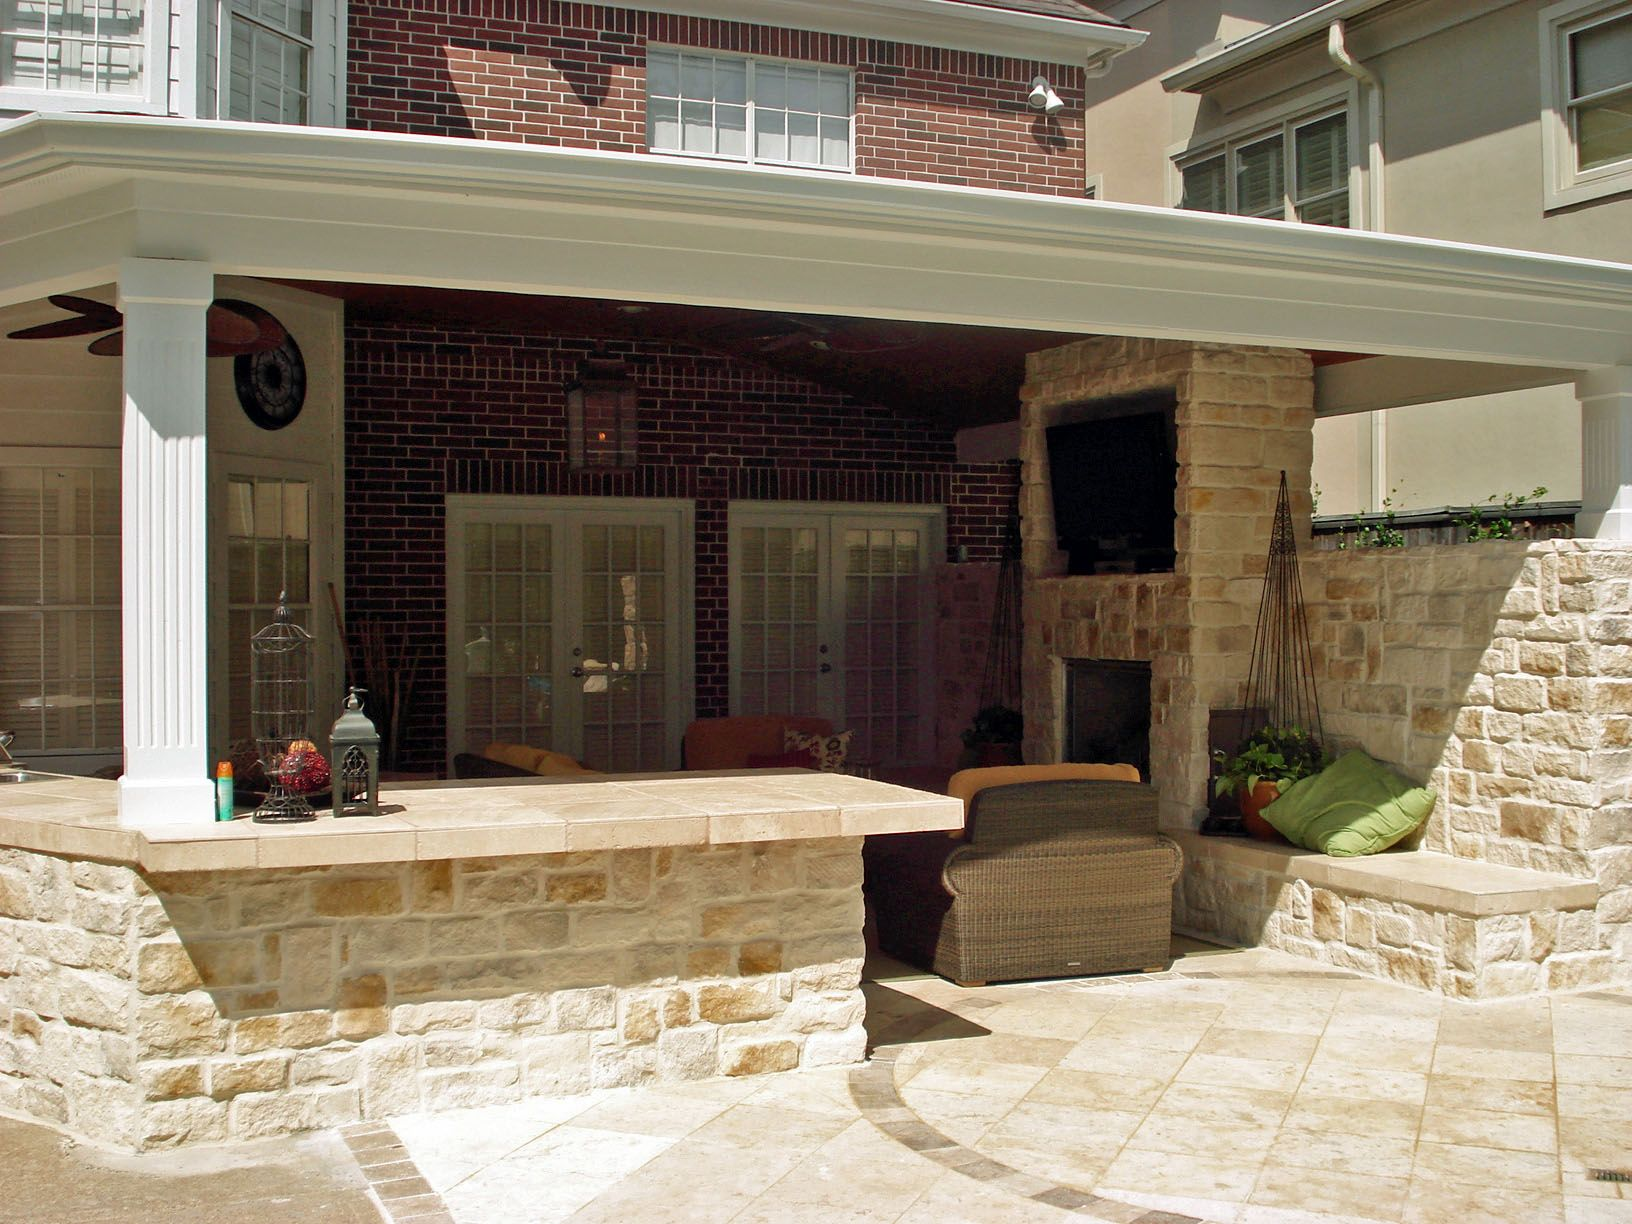 outdoor kitchen with covered patio | Building My Dream ... on Outdoor Kitchen With Covered Patio id=53914